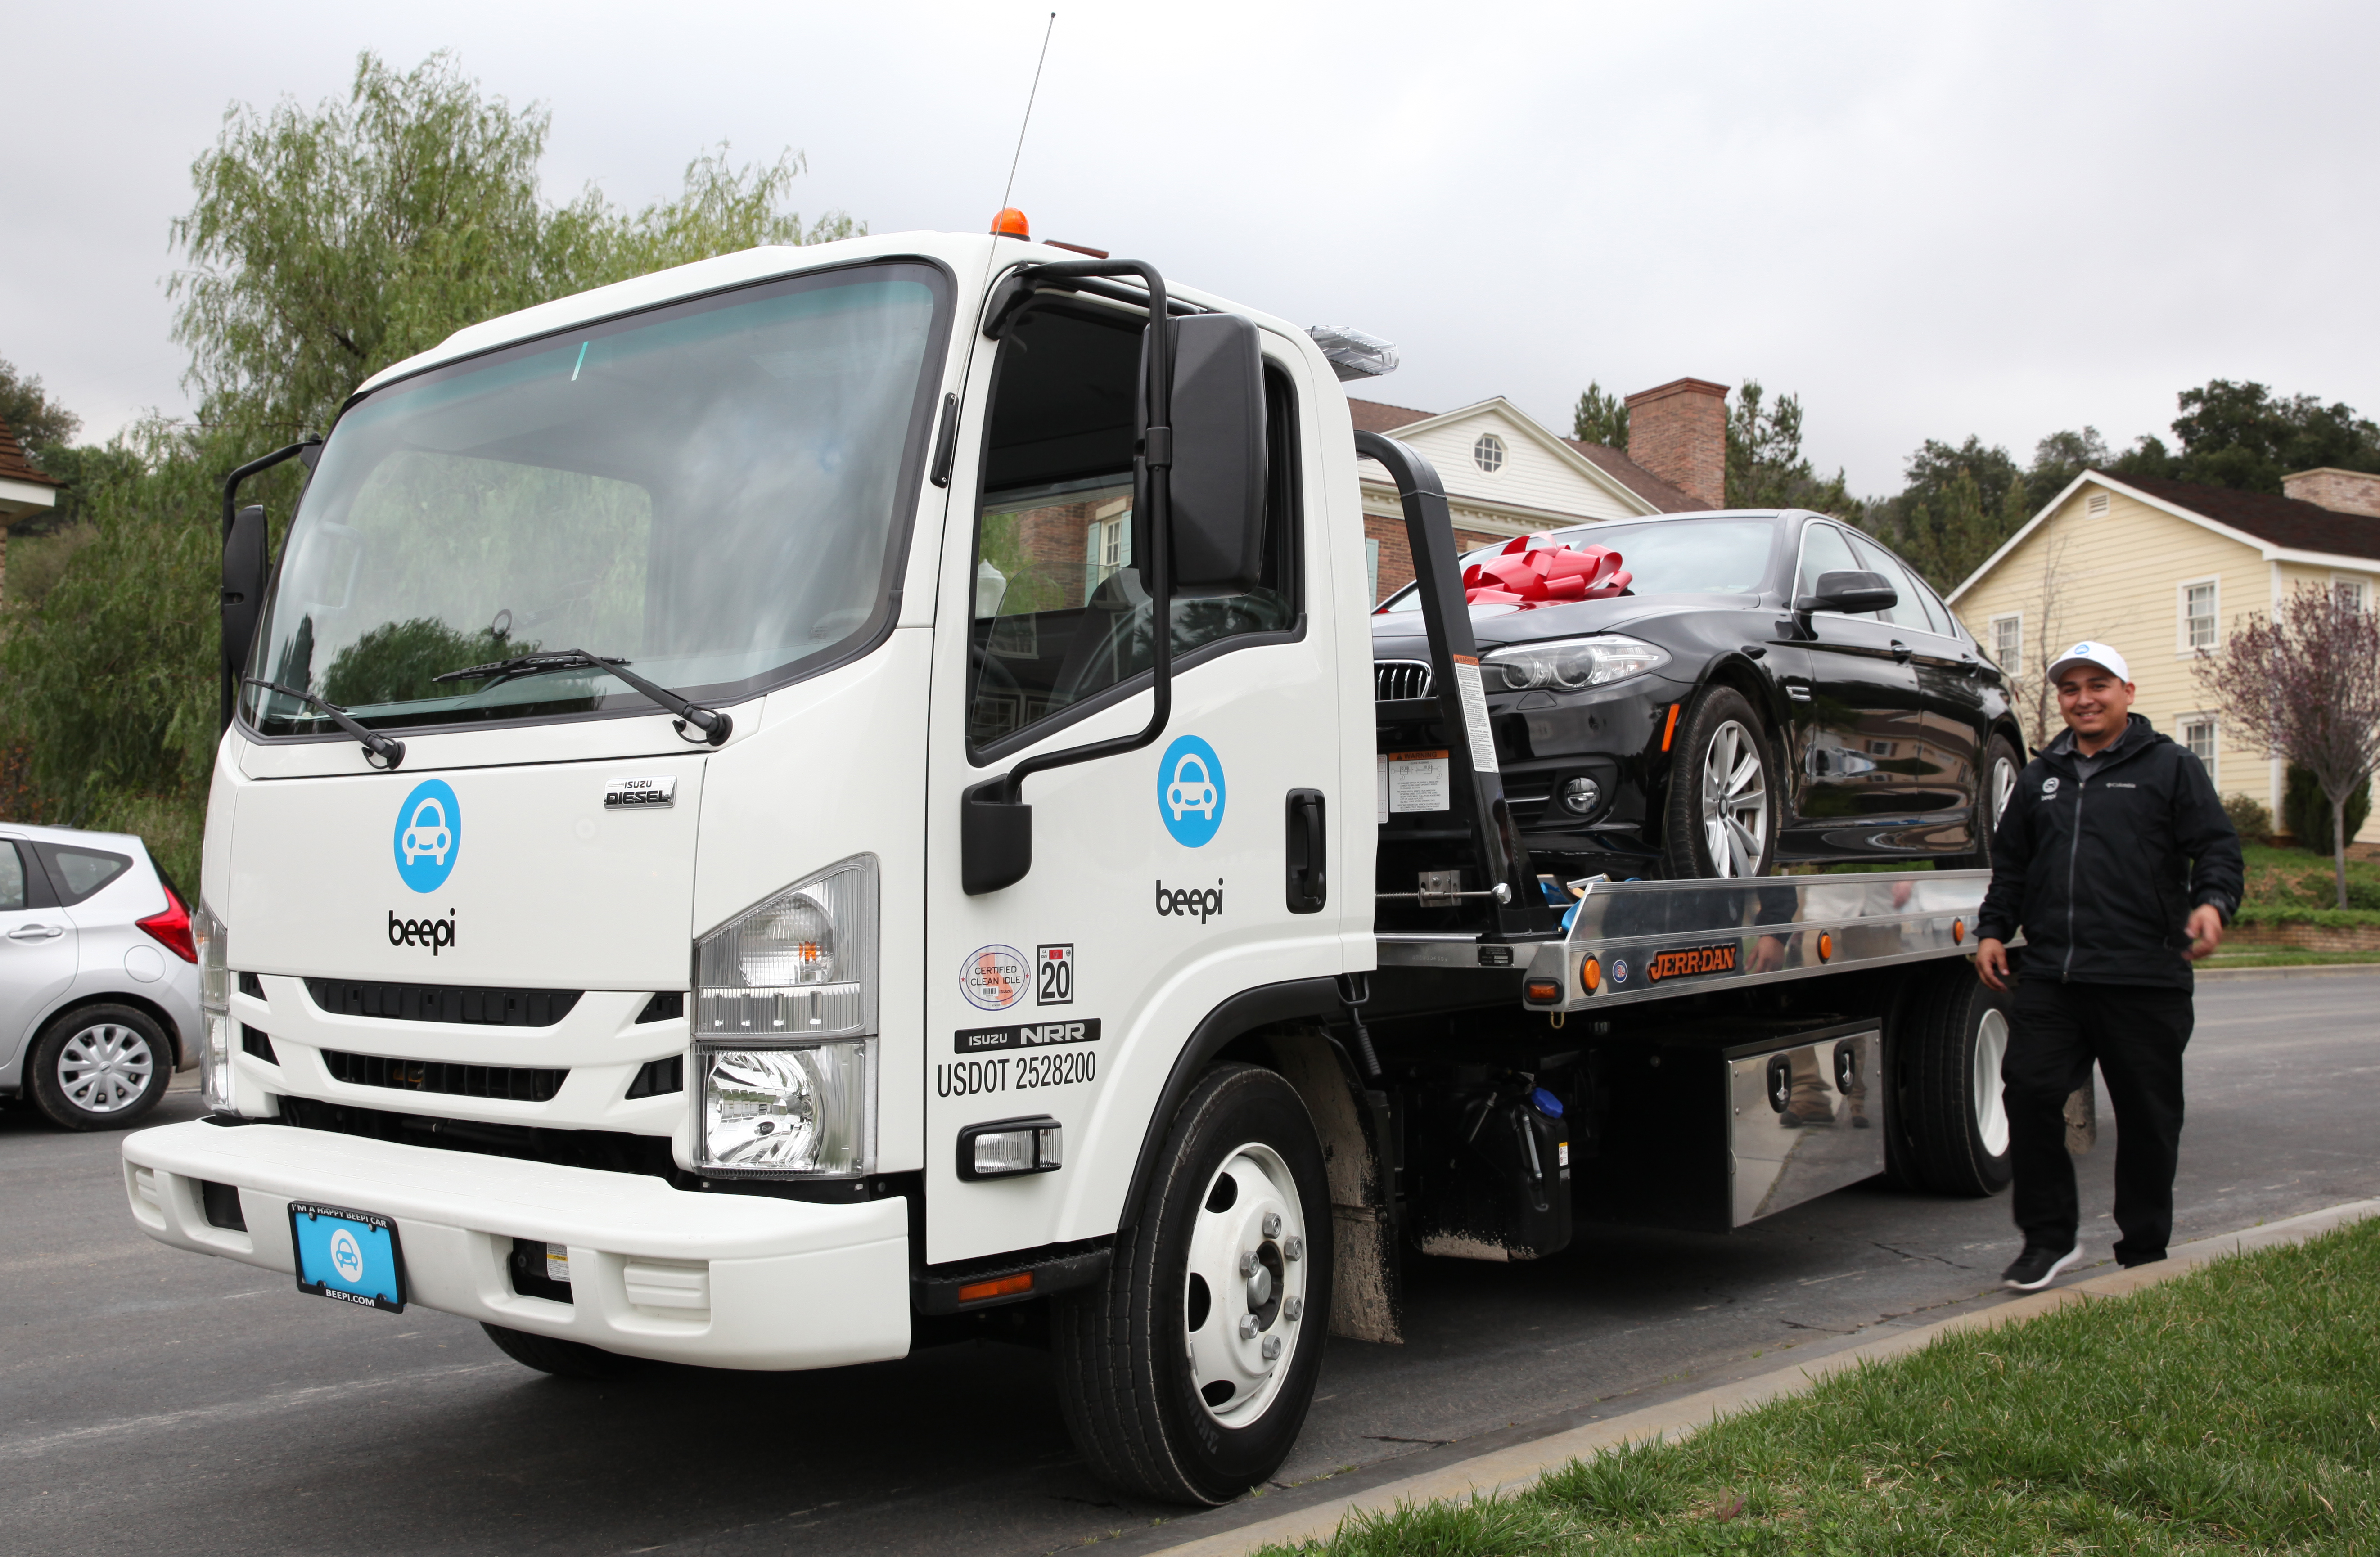 Beepi, an online used-car startup, is shutting down and merging with a new venture.